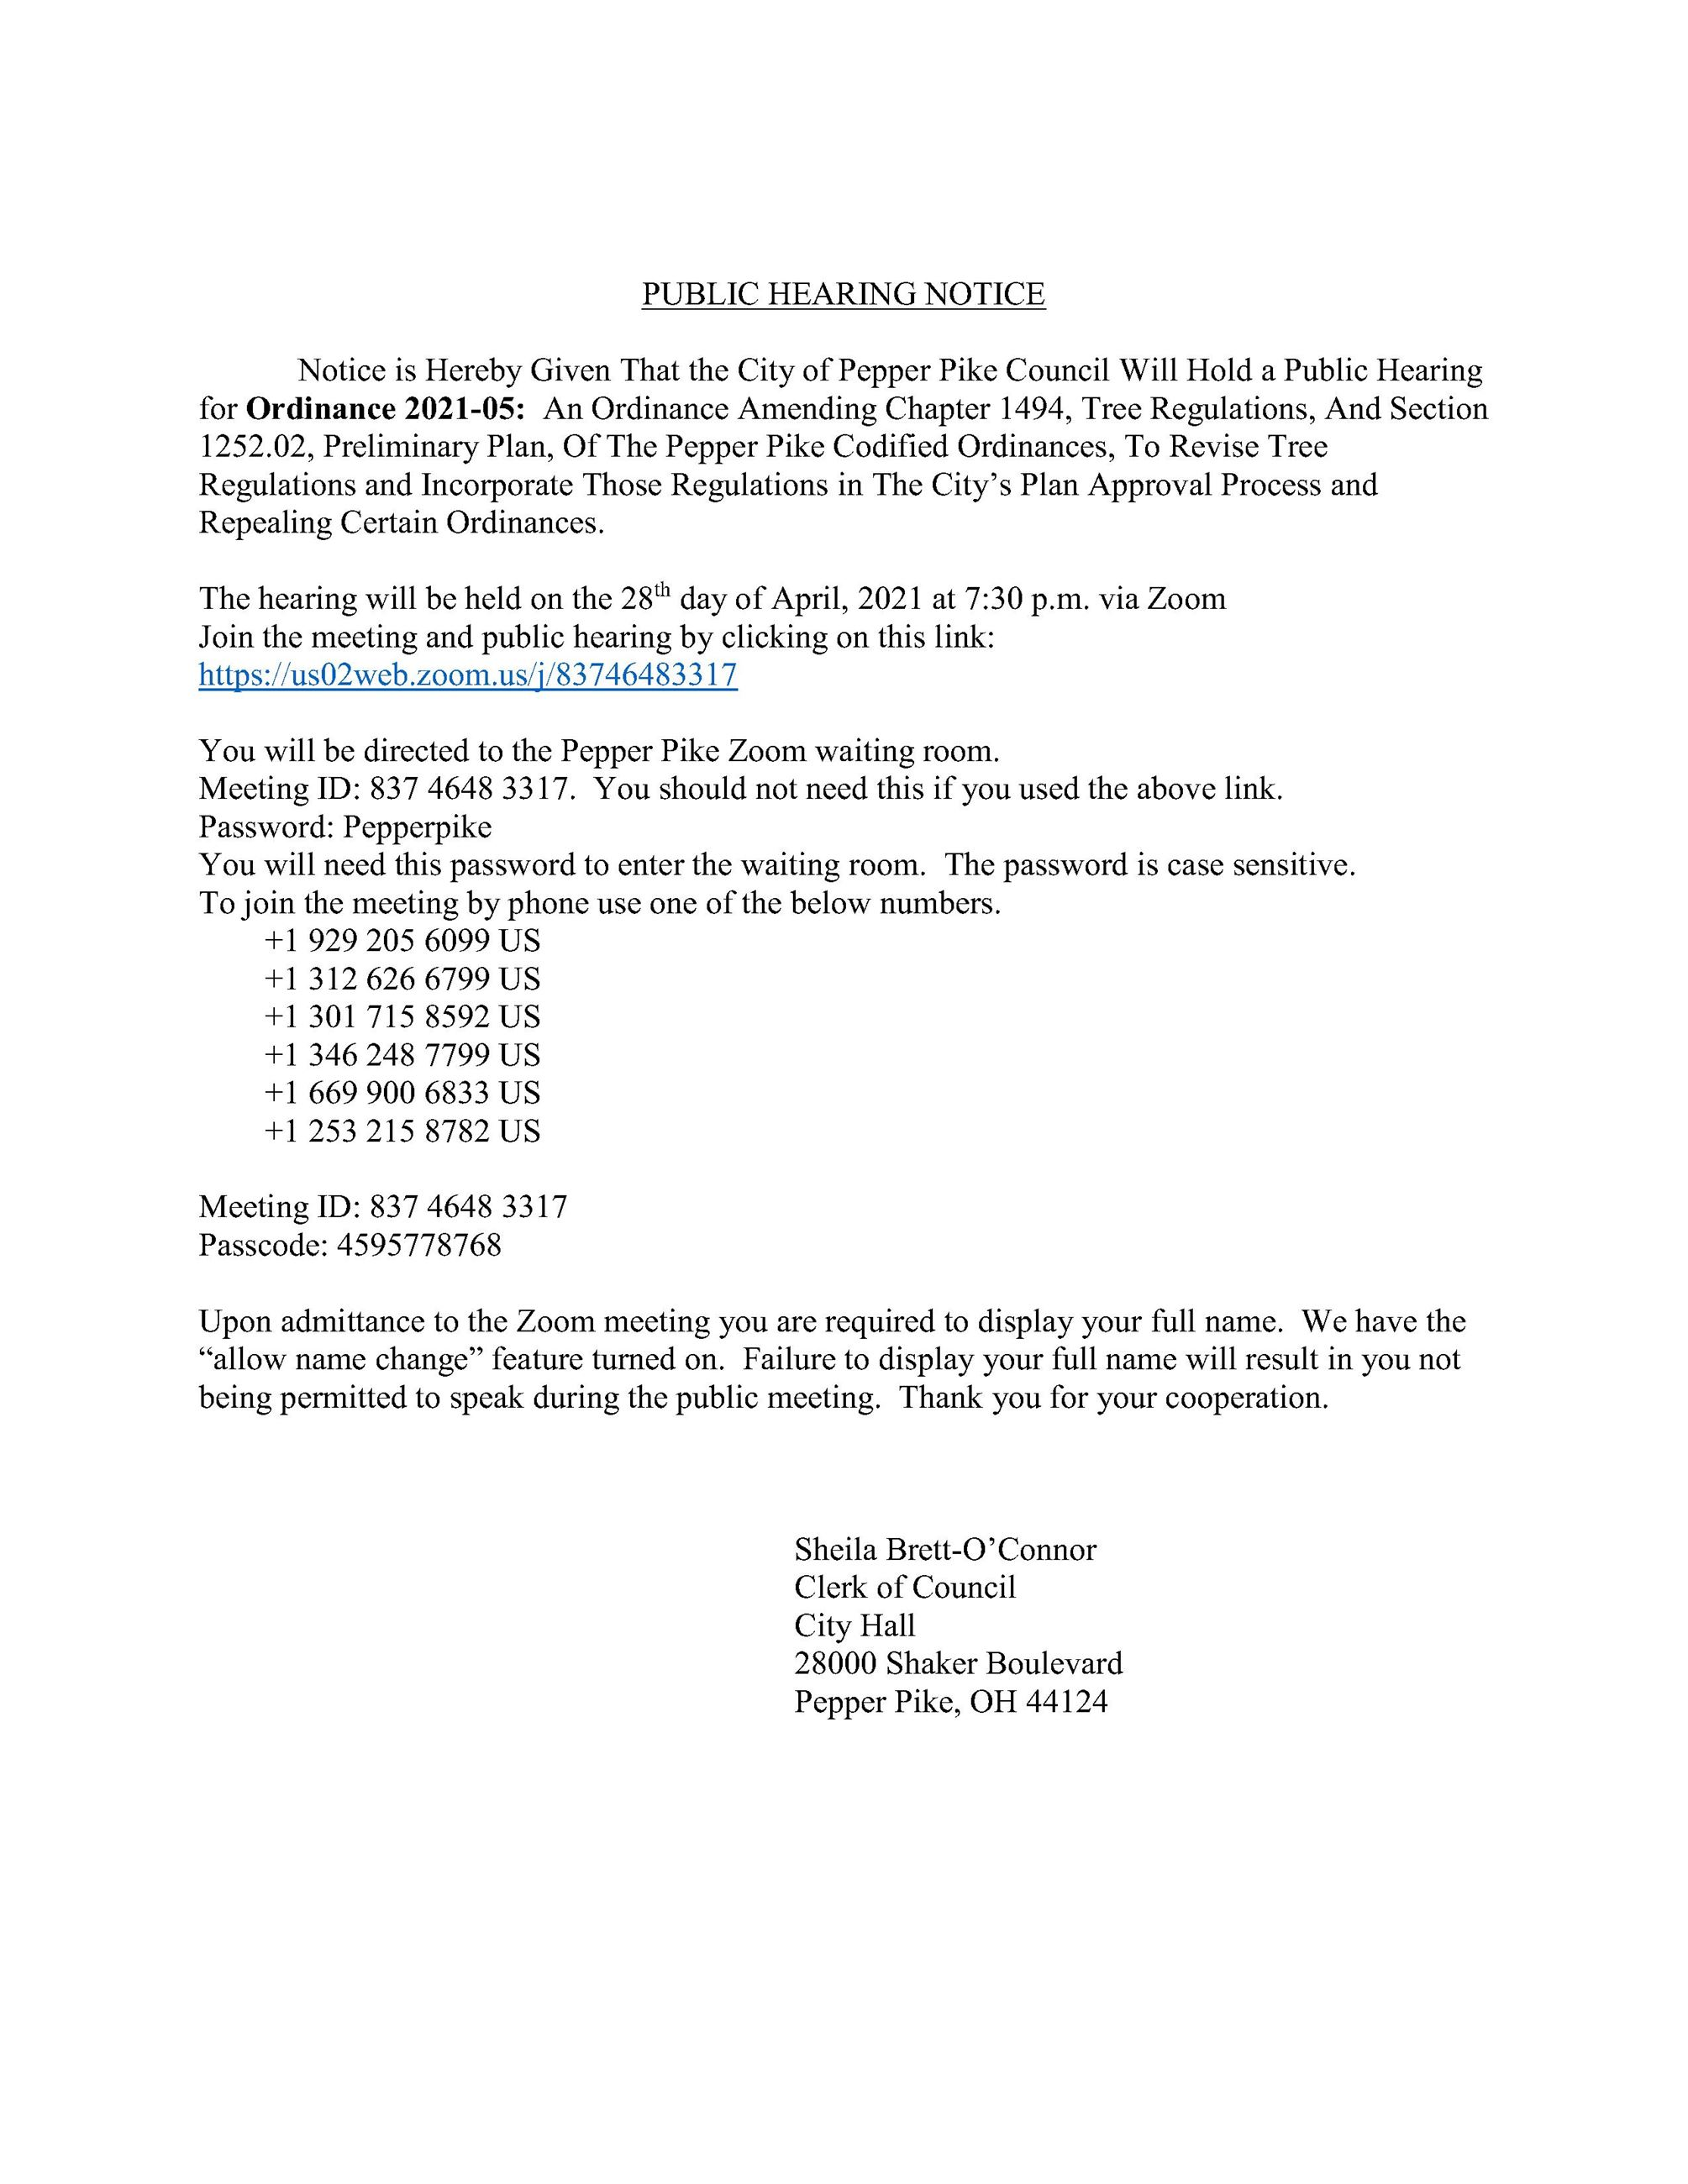 Public Hearing Notice Ord 2021-05